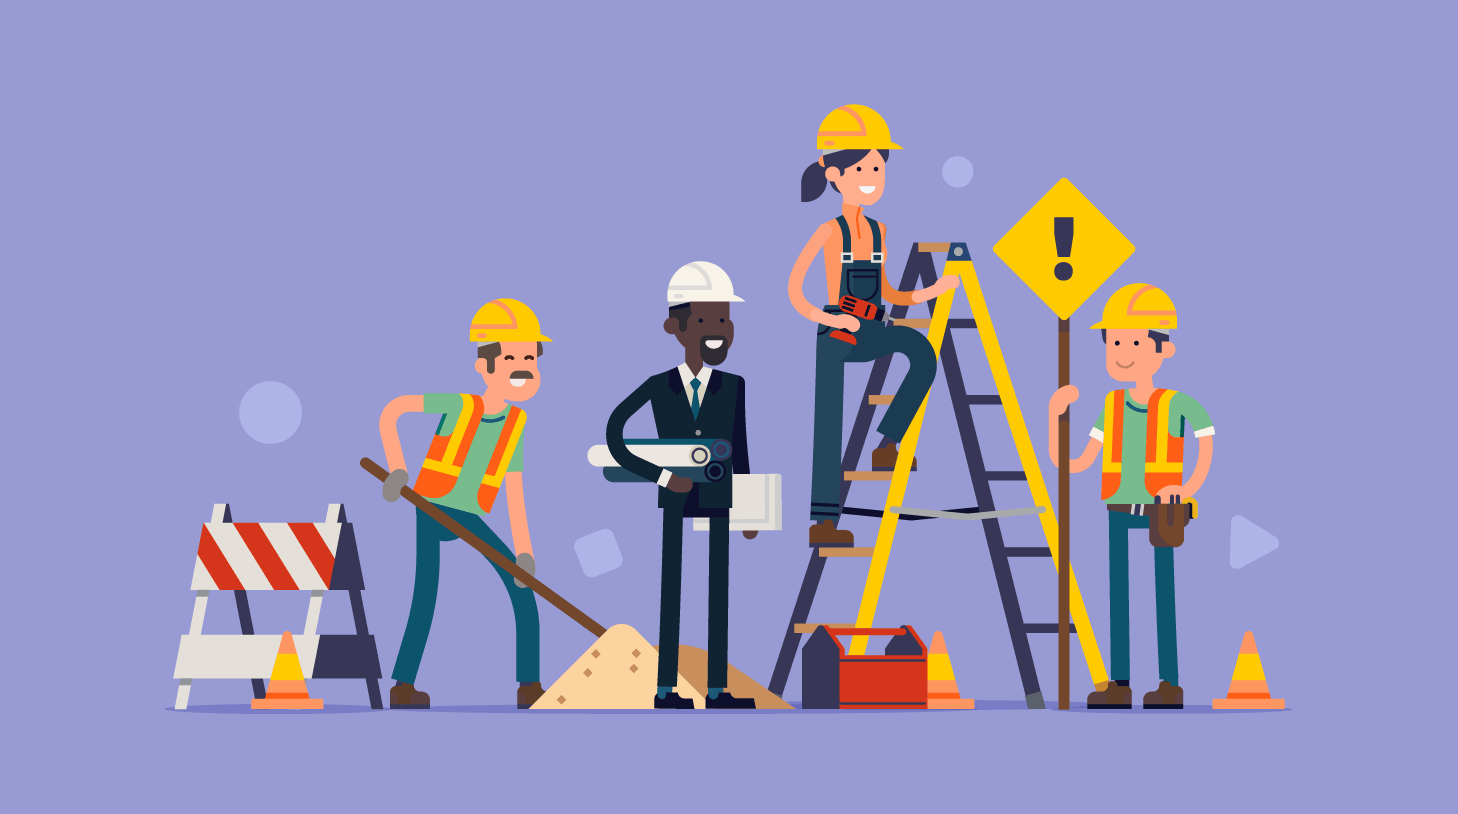 Stylized image of construction workers